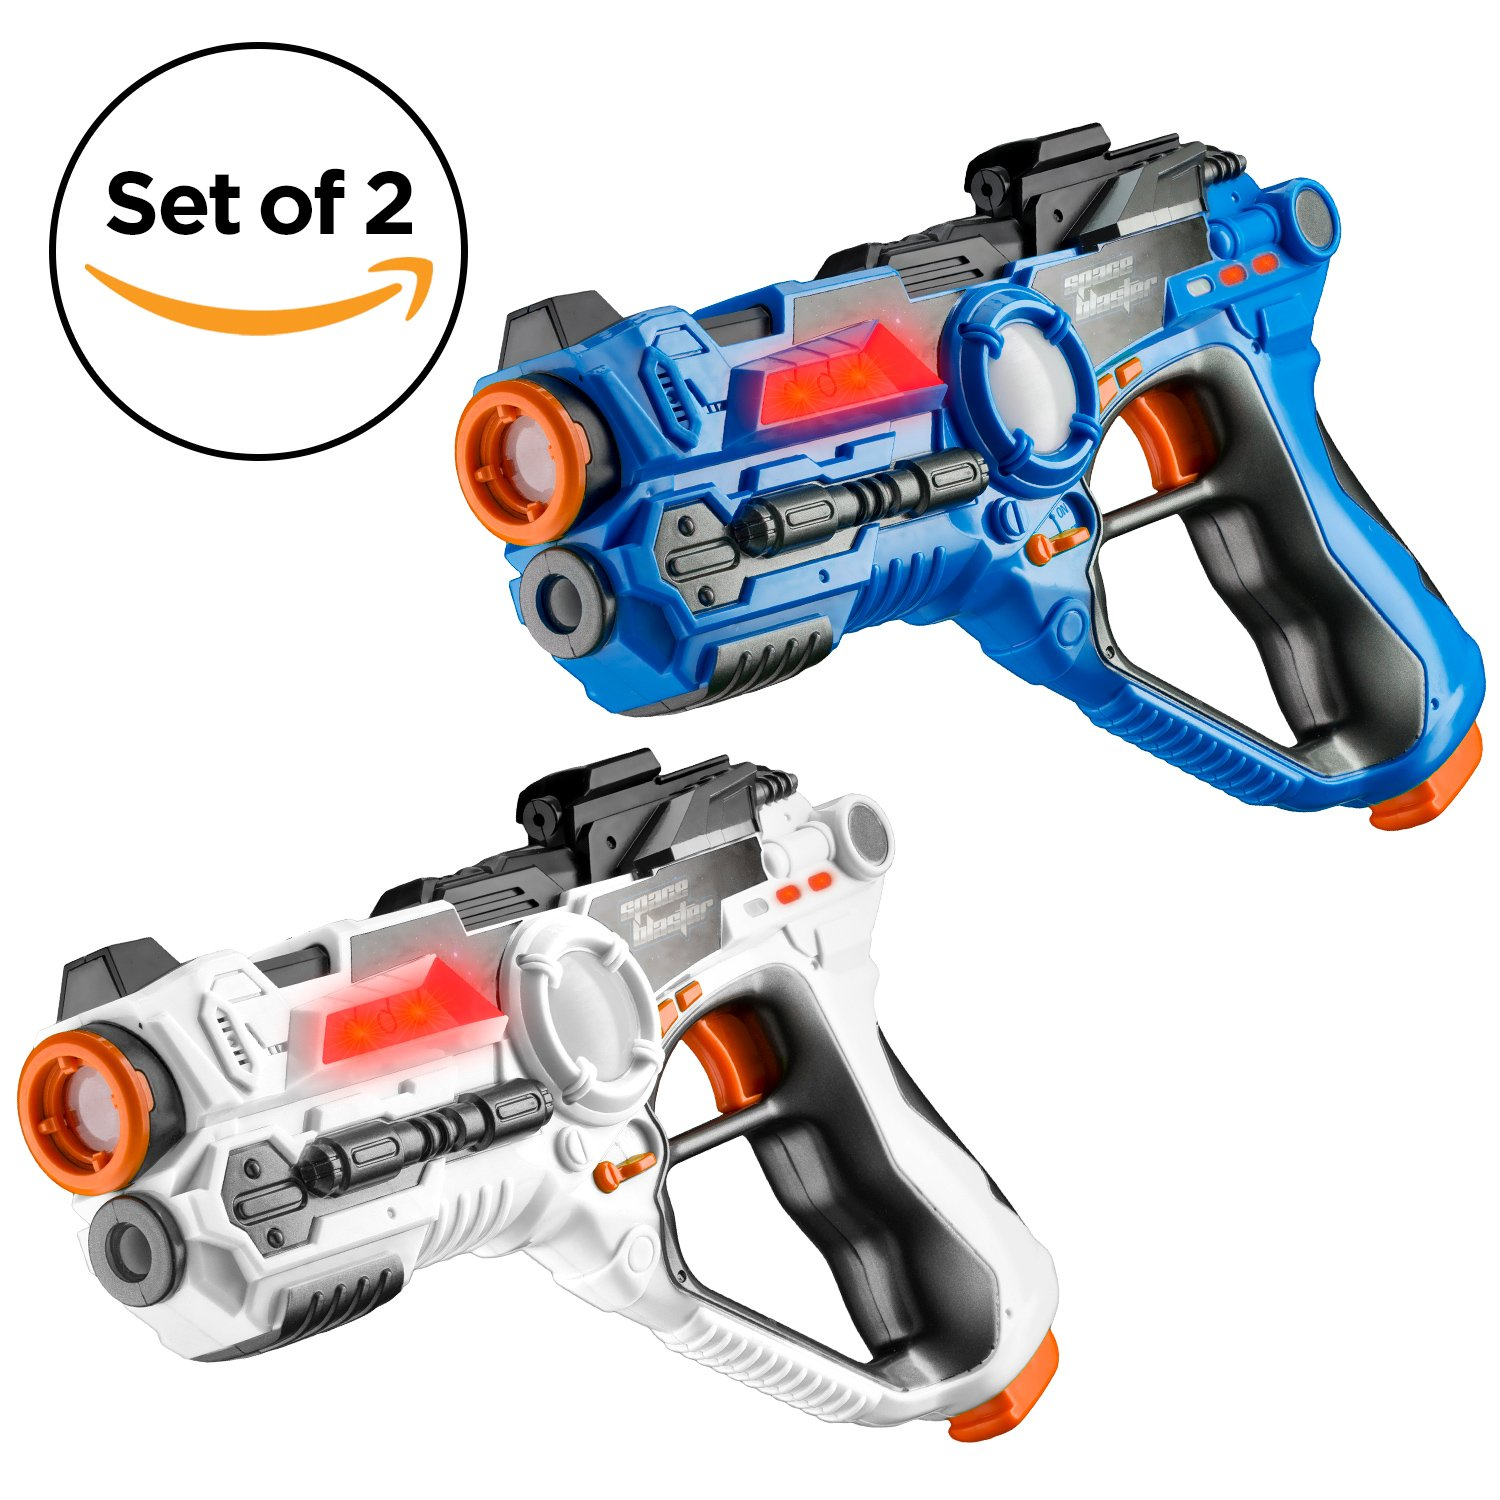 Toydaloo Set of 2 Infrared Laser Tag Guns, 2 Player Indoor and Outdoor Team Game - Blue/White by (Blue, White)